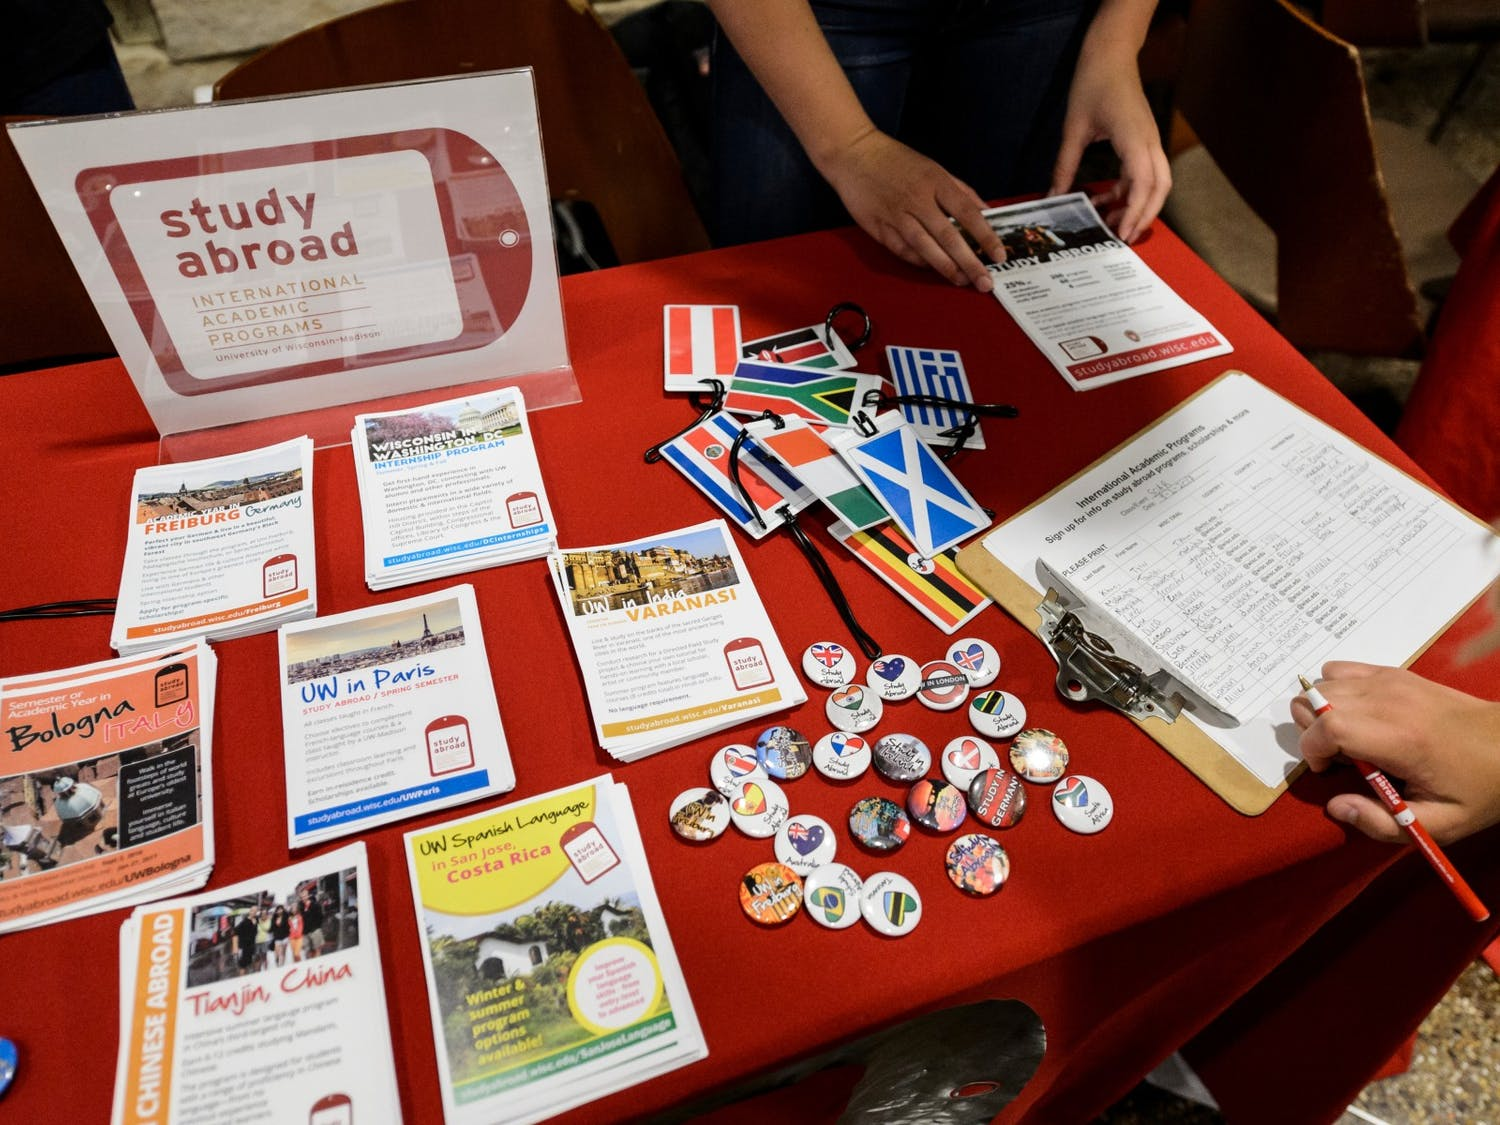 UW-Madison student abroad students in certain countries have been ordered to return home due to the COVID-19 outbreak, but can still complete their academic programs.